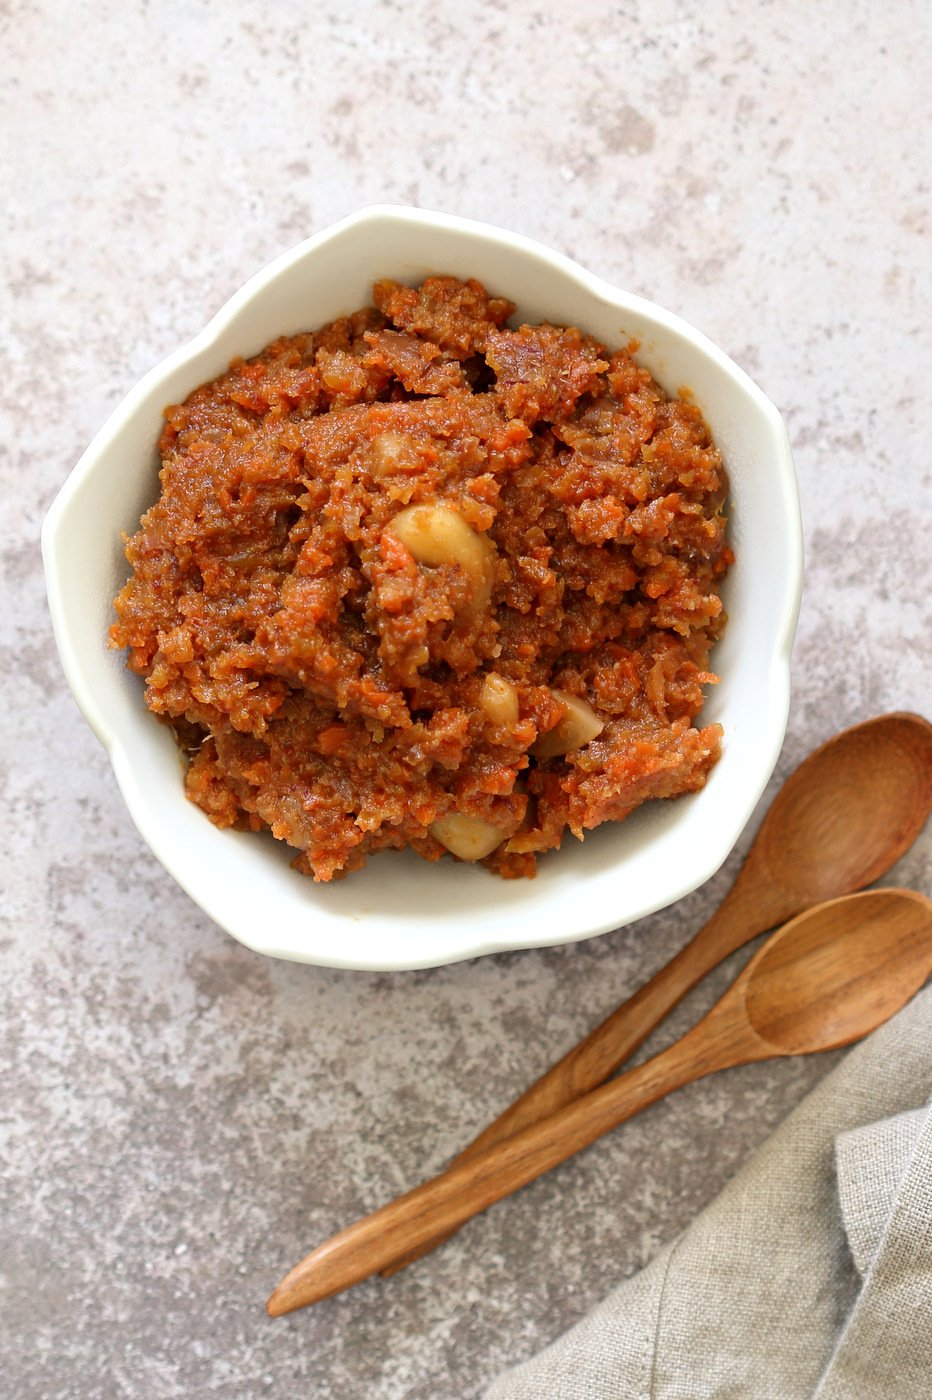 Instant Pot Gajar Halwa - Vegan Carrot Halwa Recipe. Carrot Halwa is an Indian dessert, a flourless Carrot Cake Crumble/pudding that is spiced with cardamom and served during festivals. #Vegan #Glutenfree #Soyfree #Recipe #veganricha | VeganRicha.com